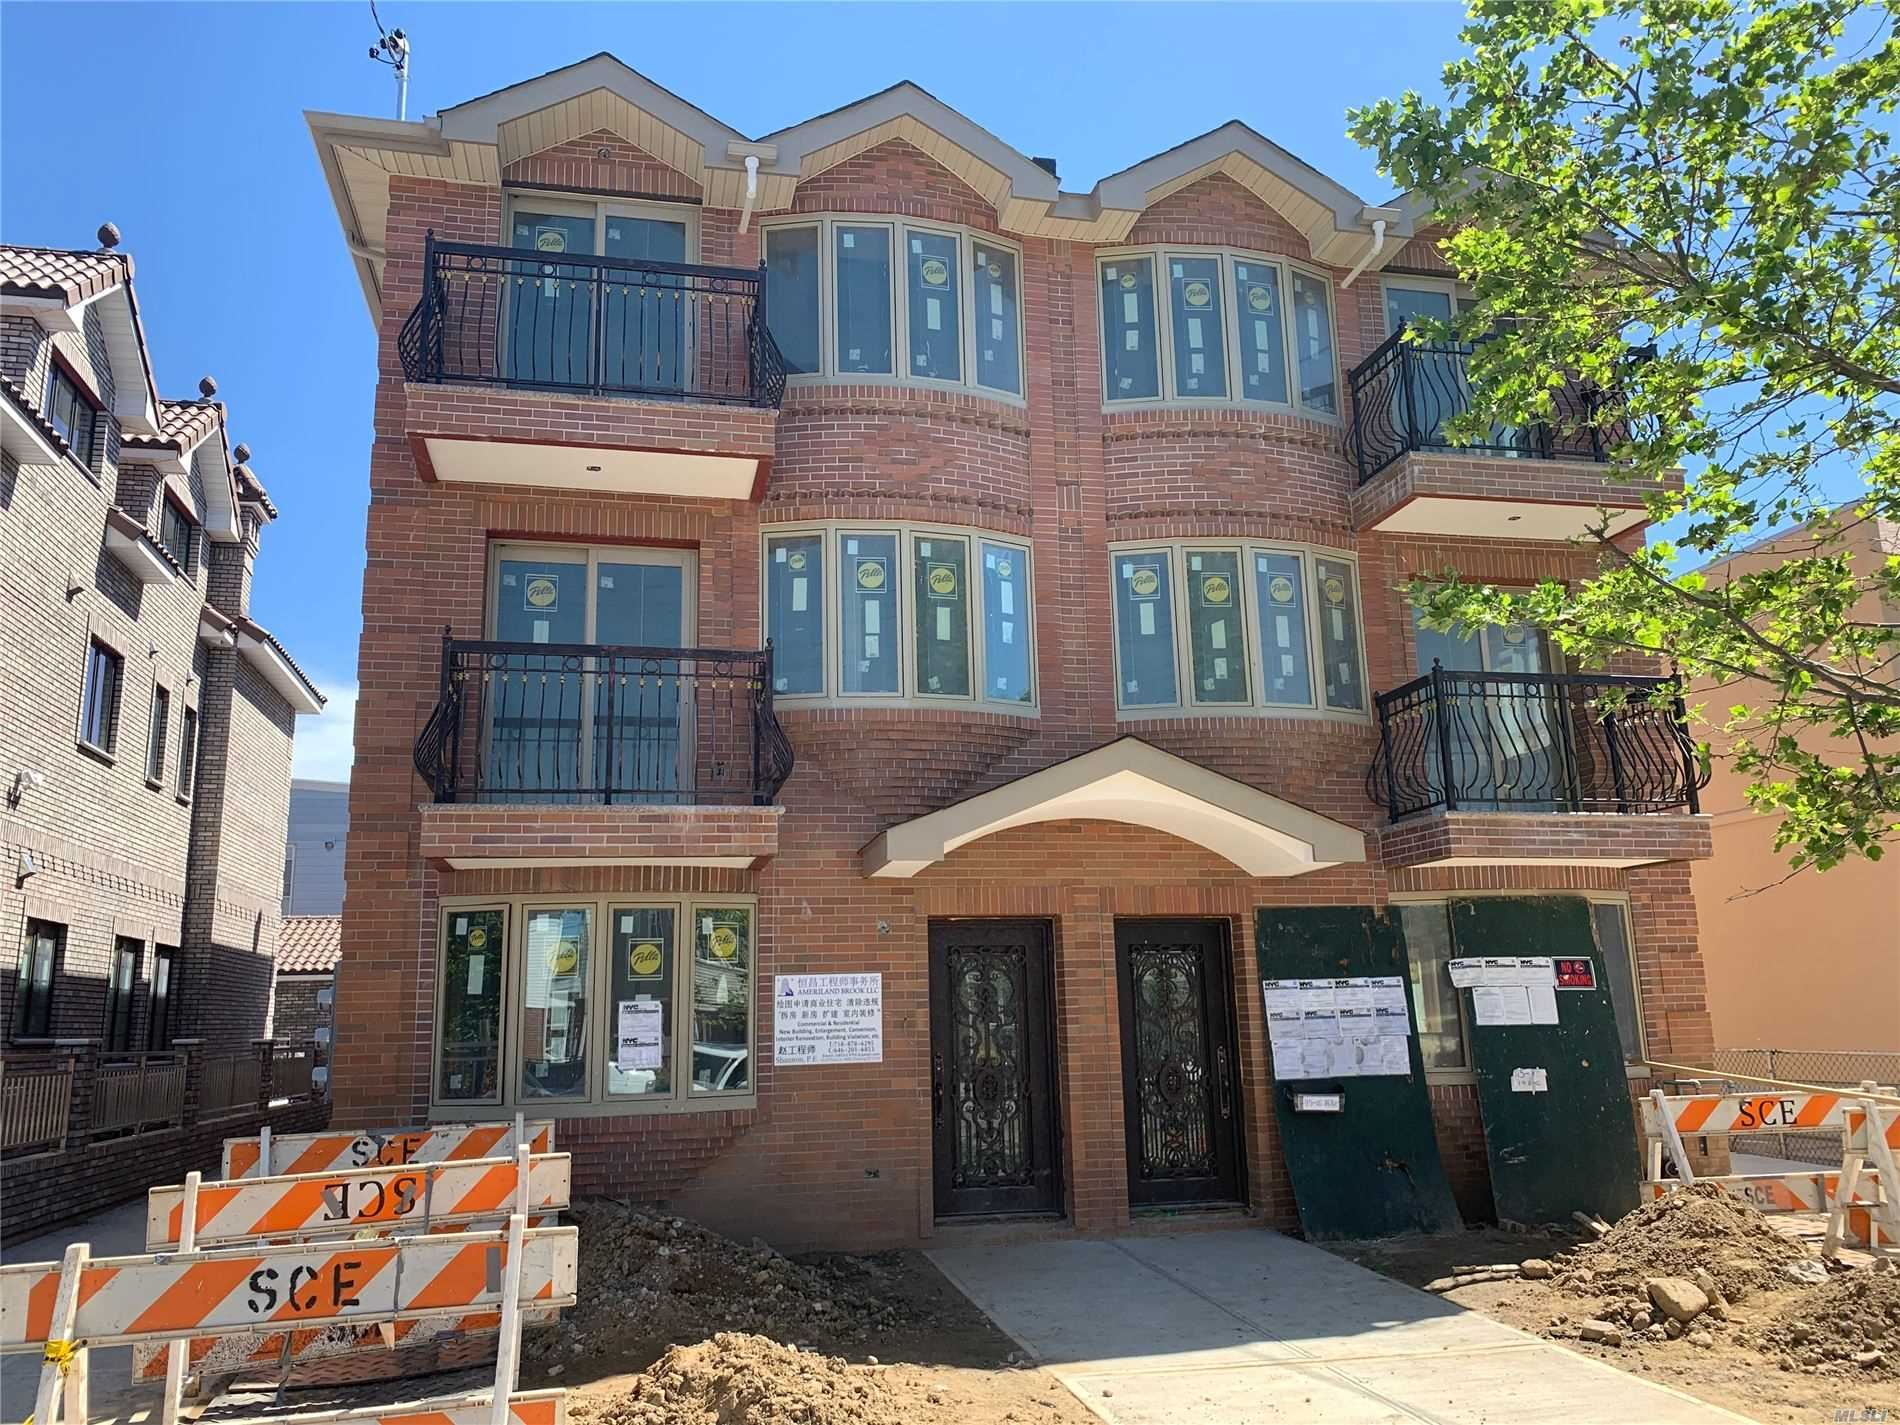 115-16 14th Ave, College Point, NY 11356 - MLS#: 3210293